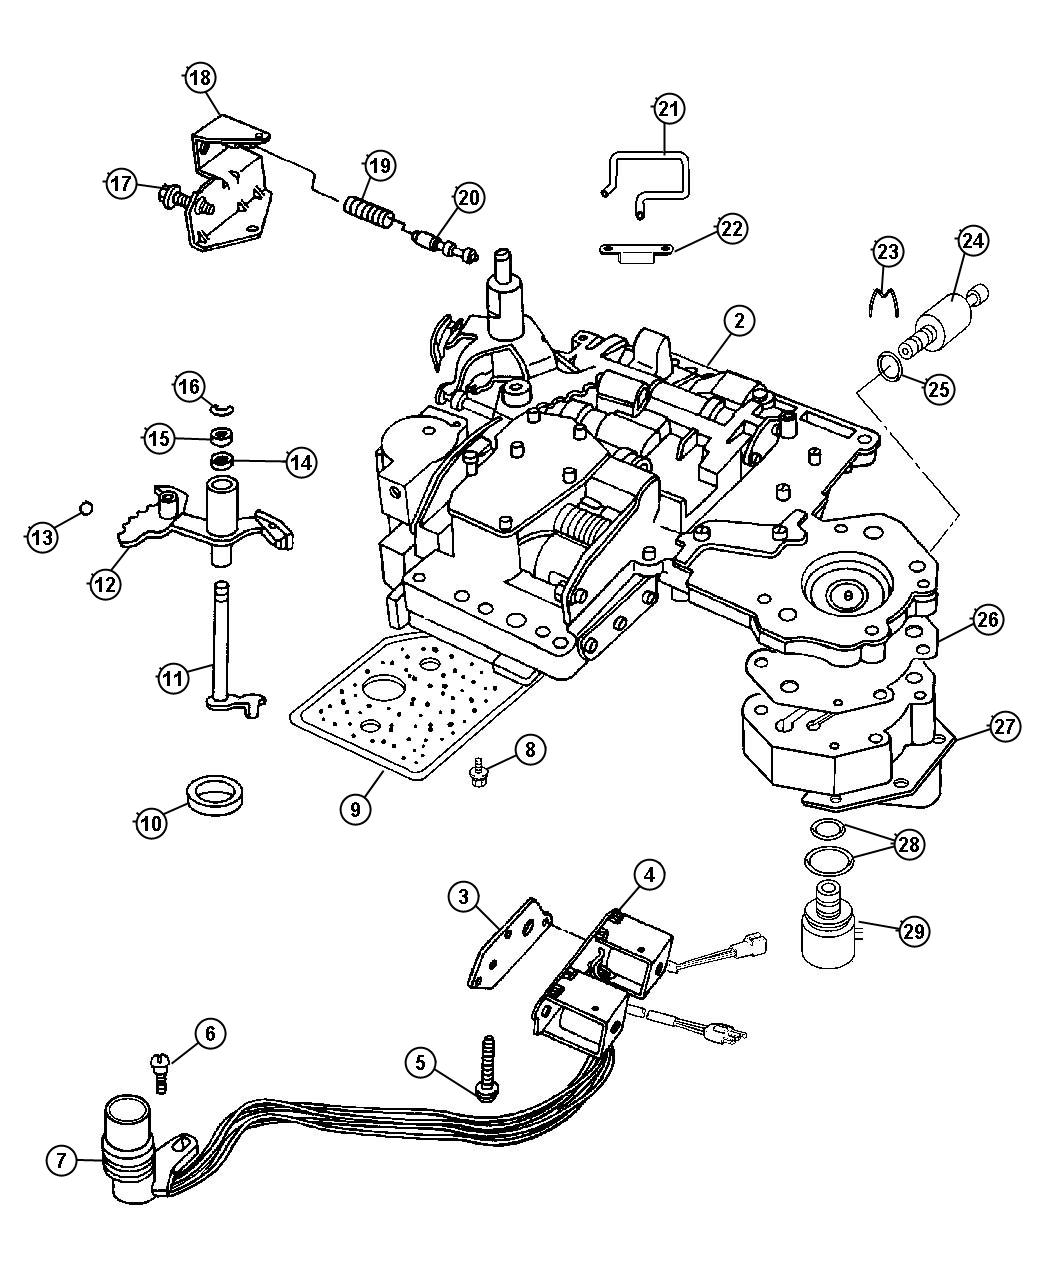 dodge 727 transmission exploded view